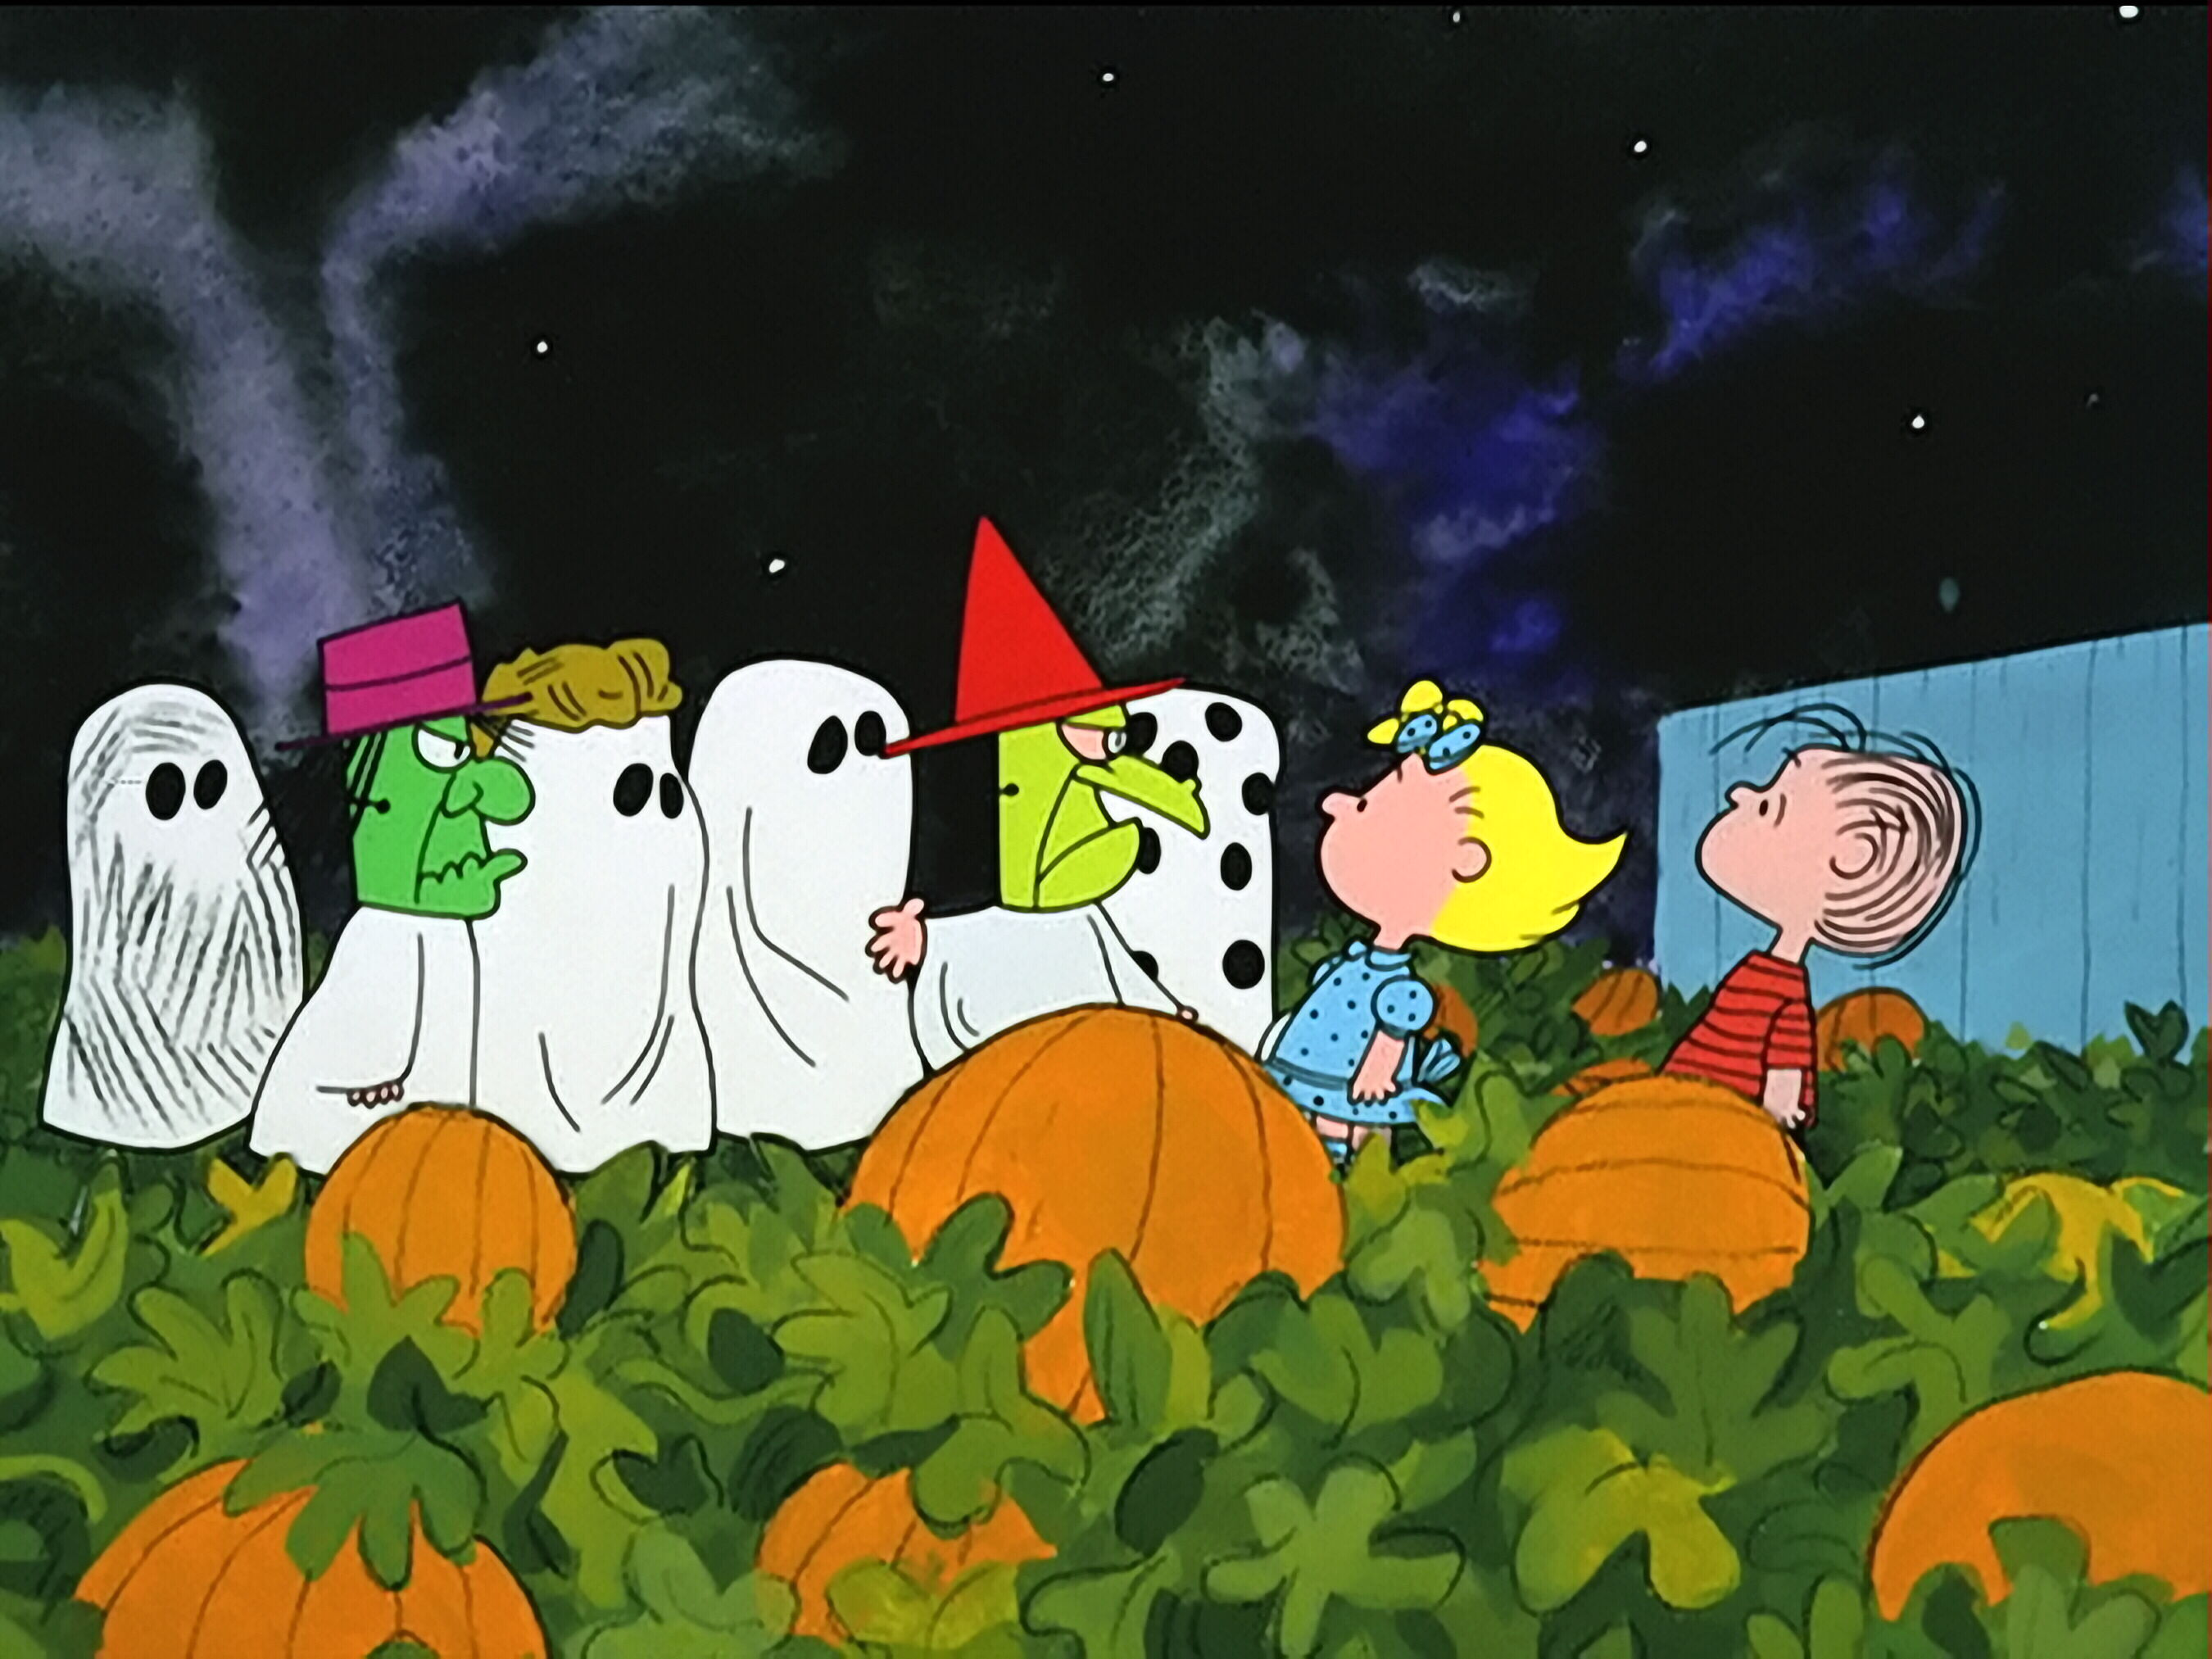 the great pumpkin charlie brown - Top Halloween Kids Movies